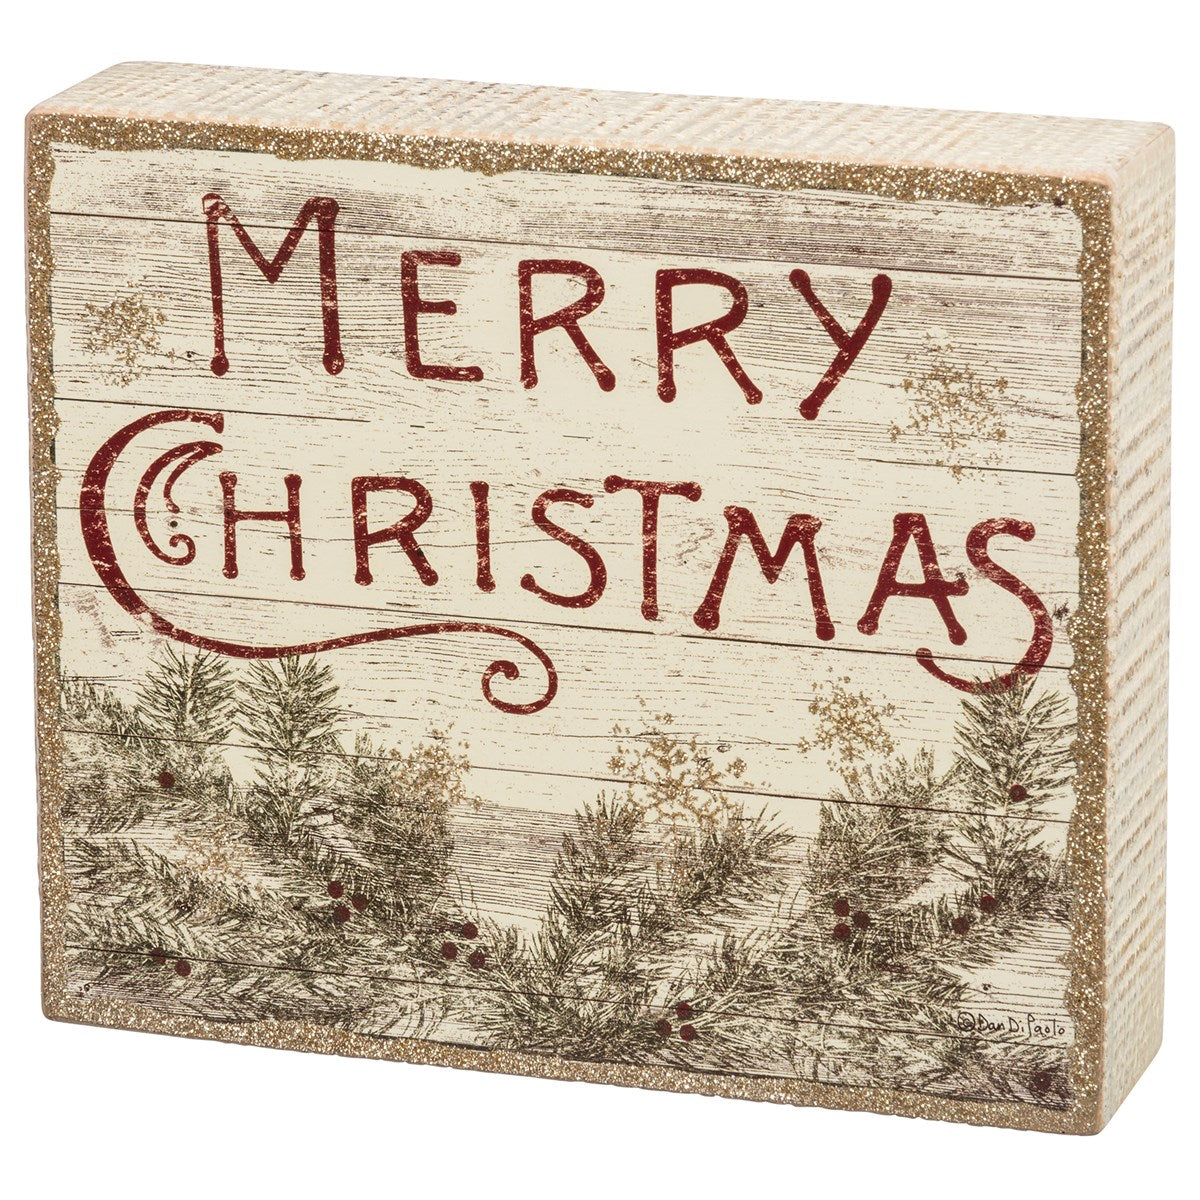 Rustic Merry Christmas Box Sign - Vintage Crossroads